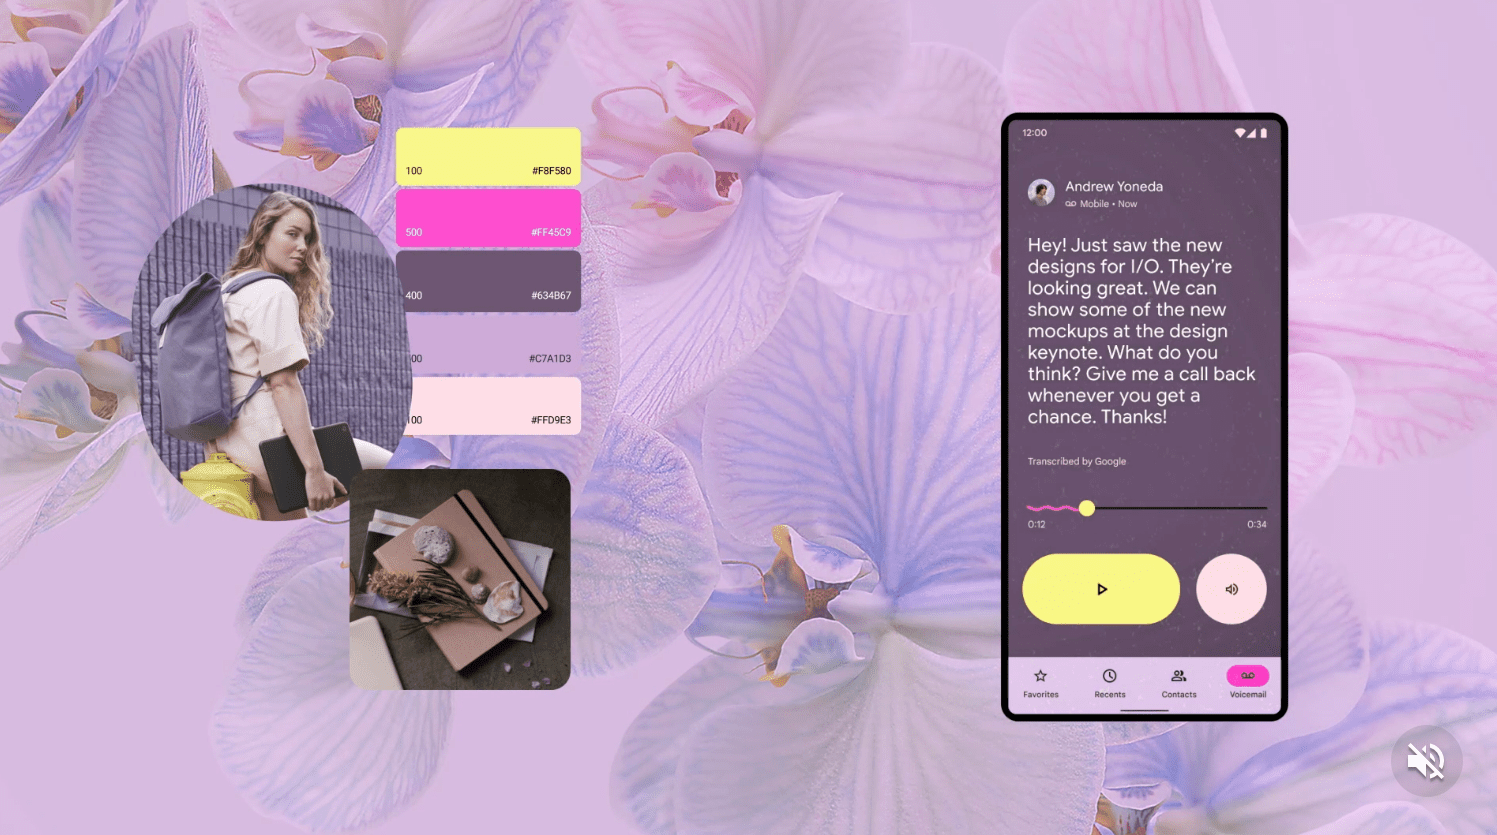 Android 12's Material You design matching the user's aesthetic and color scheme